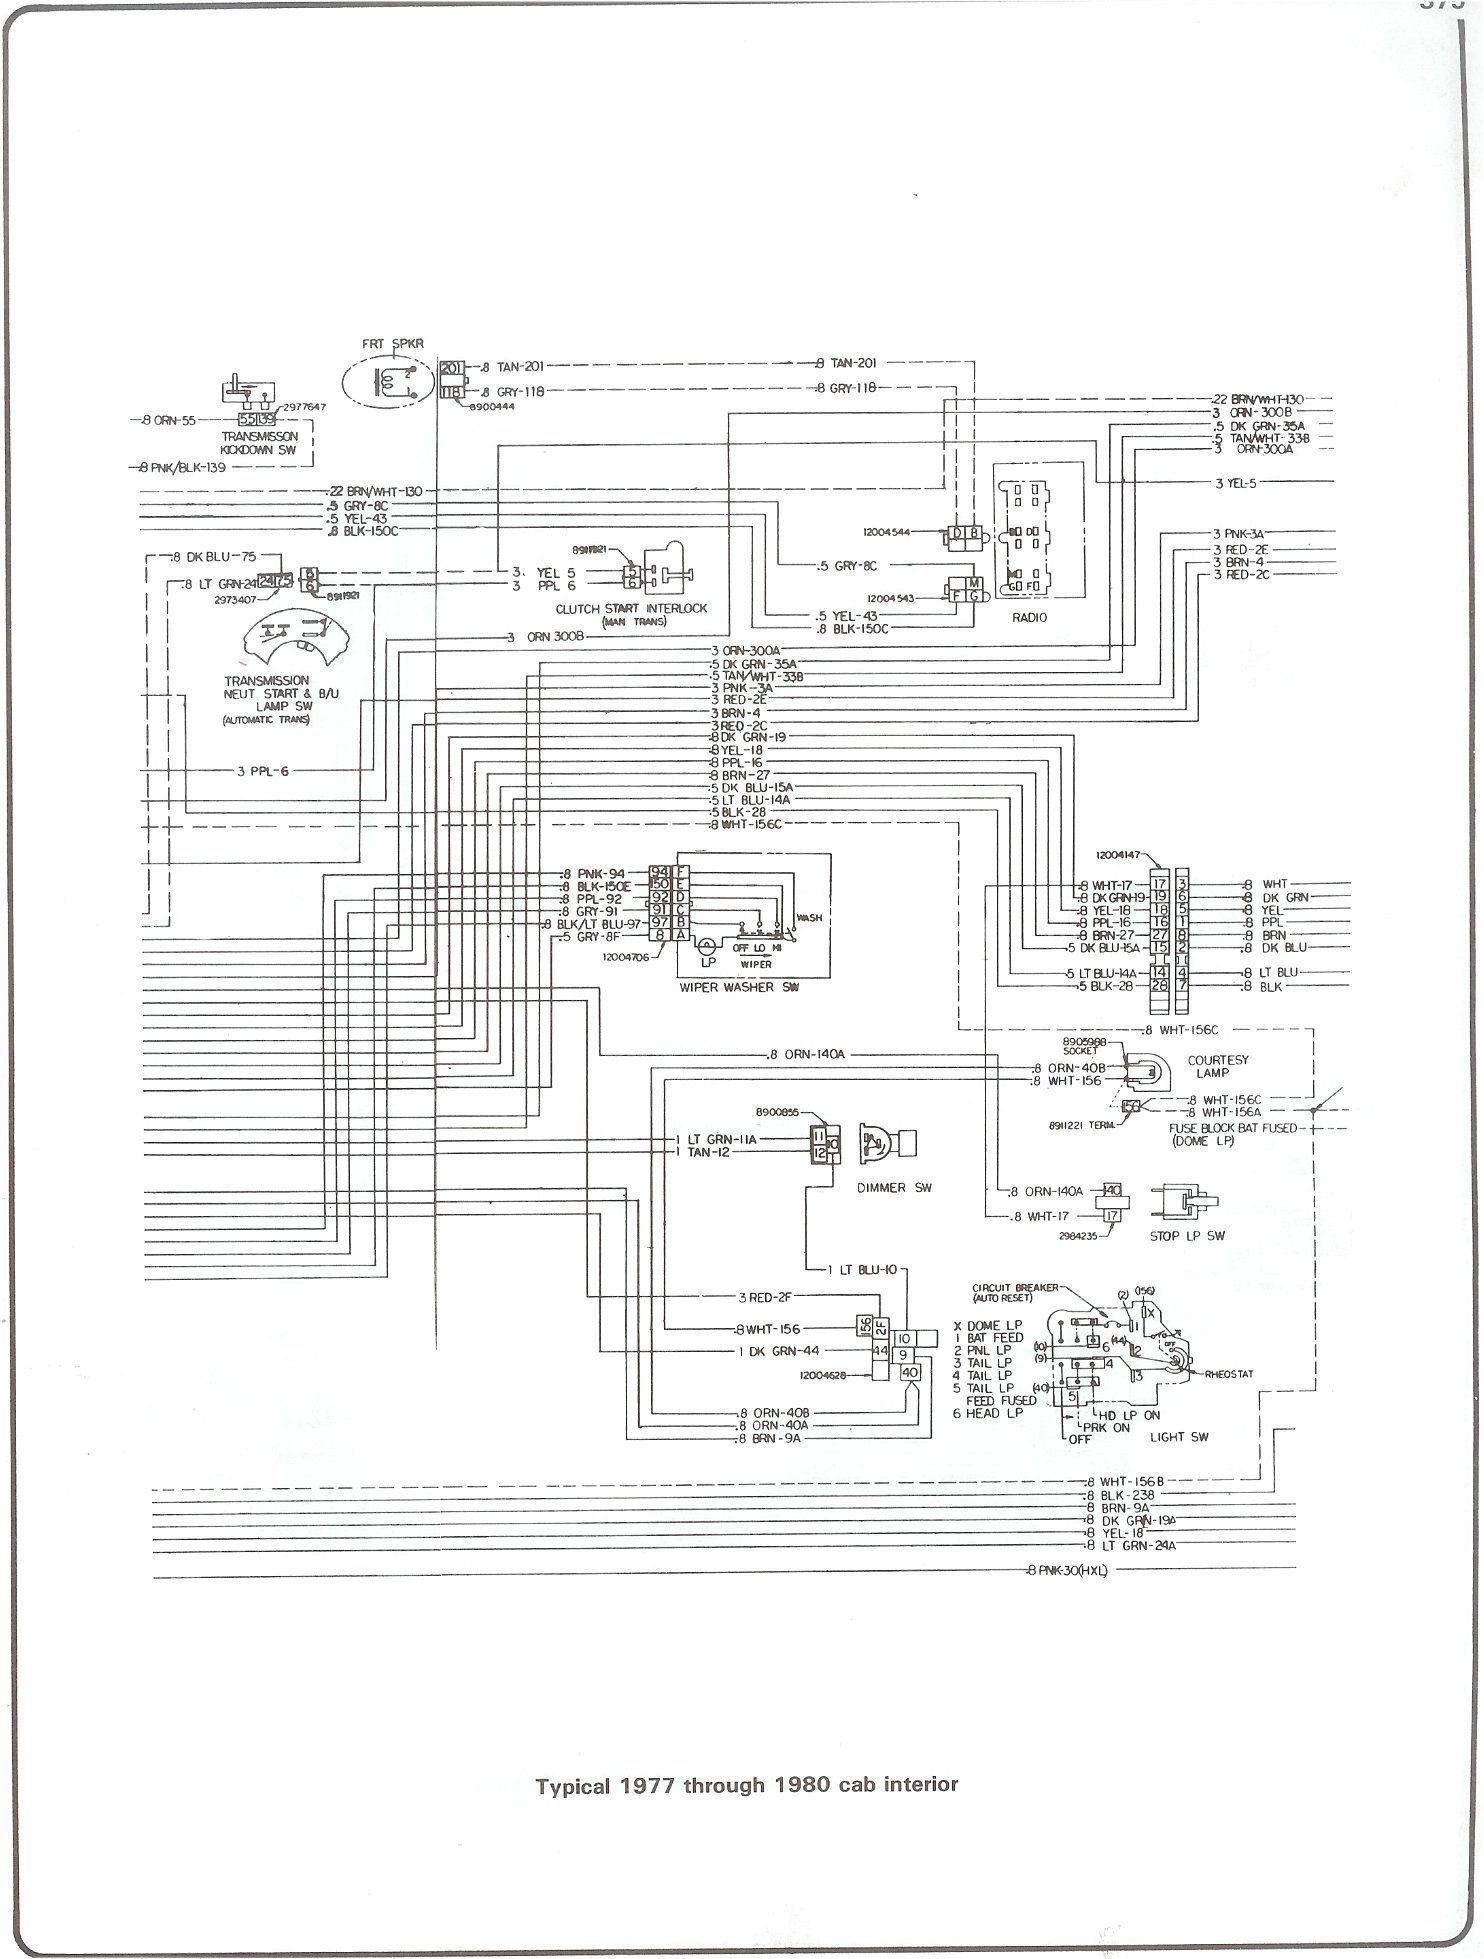 K5 Blazer Wiring Diagram 1977 - wiring diagram wave-tools -  wave-tools.hoteloctavia.it | Windshield Wiper Wiring Diagrams 86 Jimmy |  | hoteloctavia.it